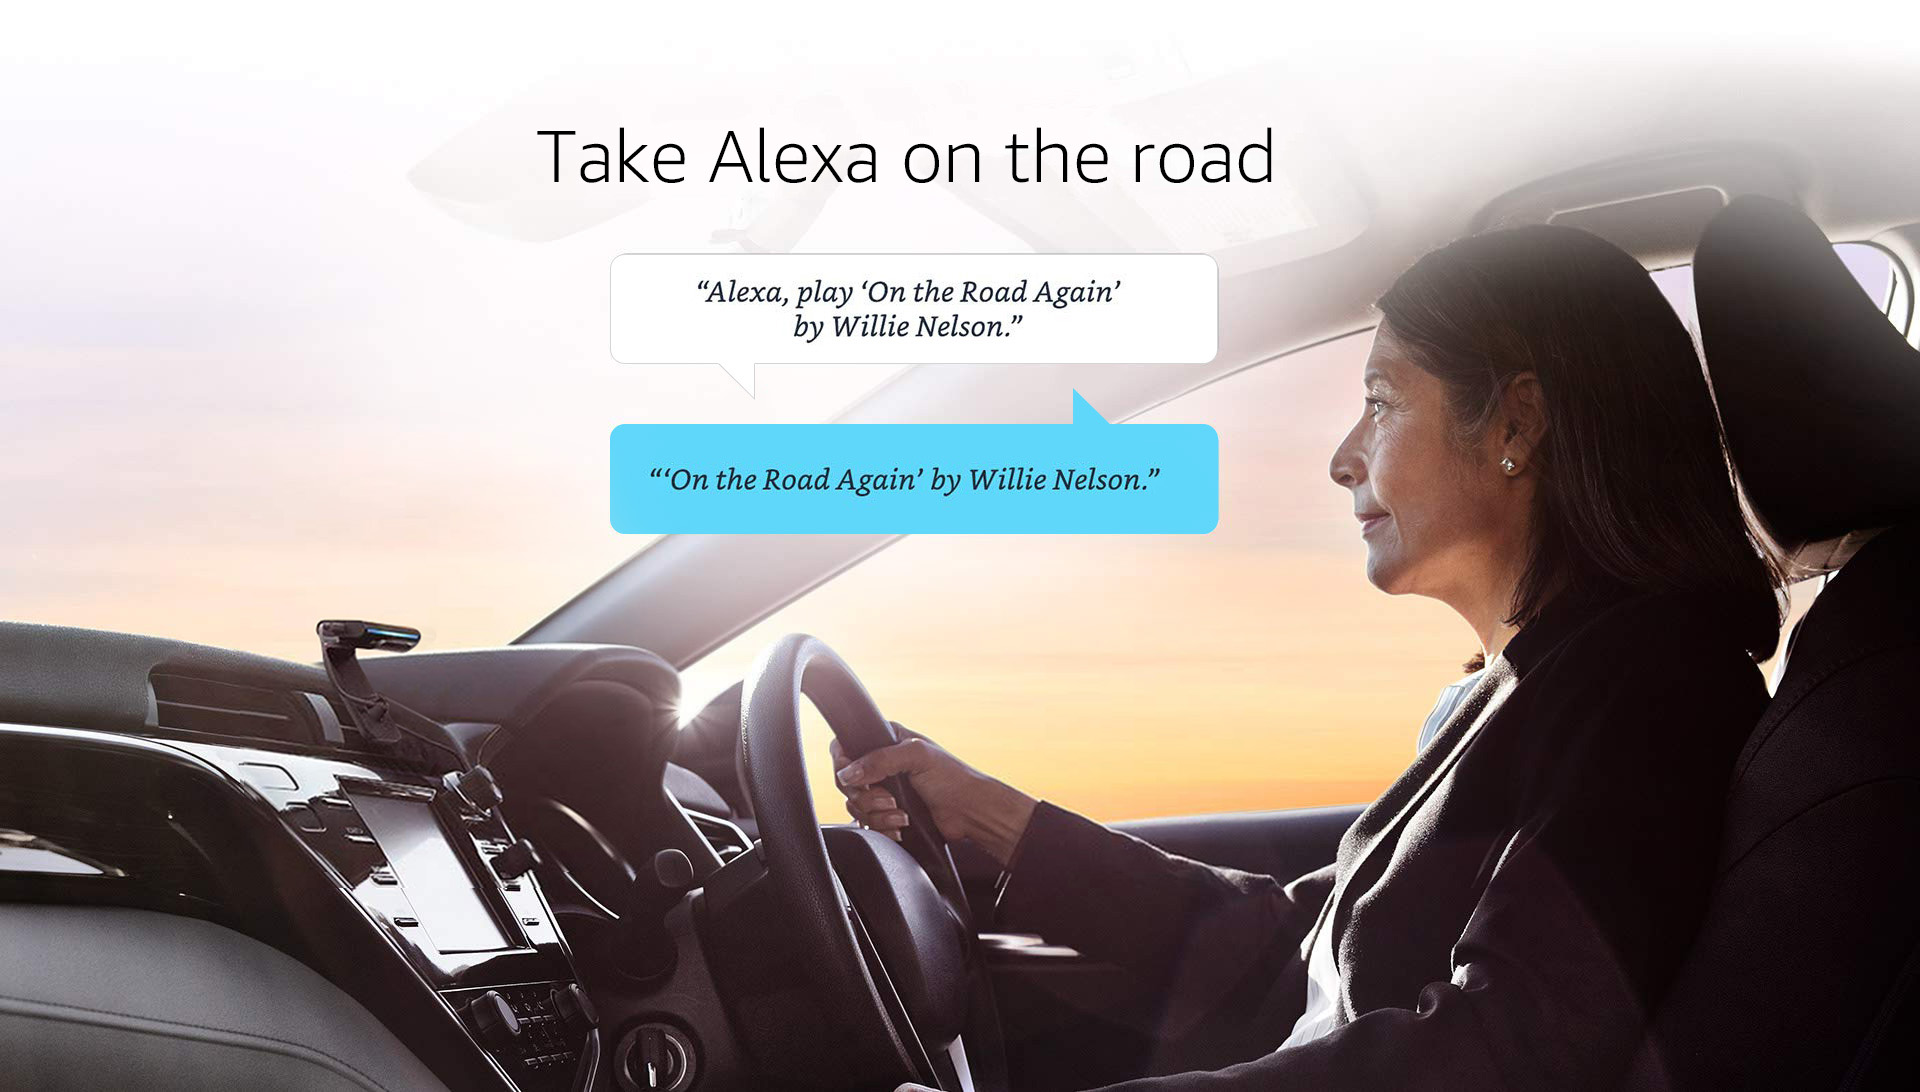 Take Alexa on the road